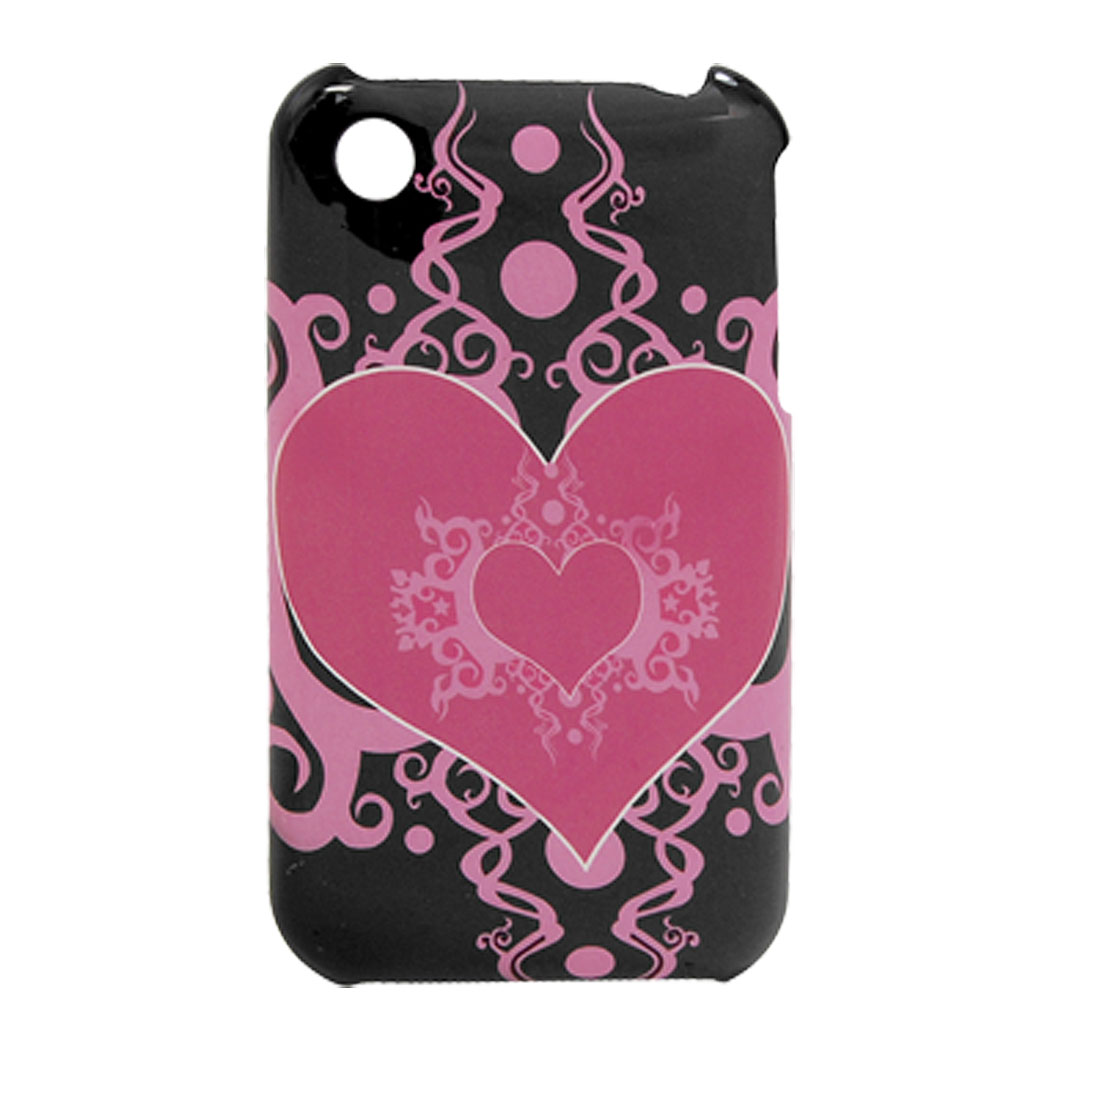 Heart Pattern Hard Plastic Back Case Shell for iPhone 3G